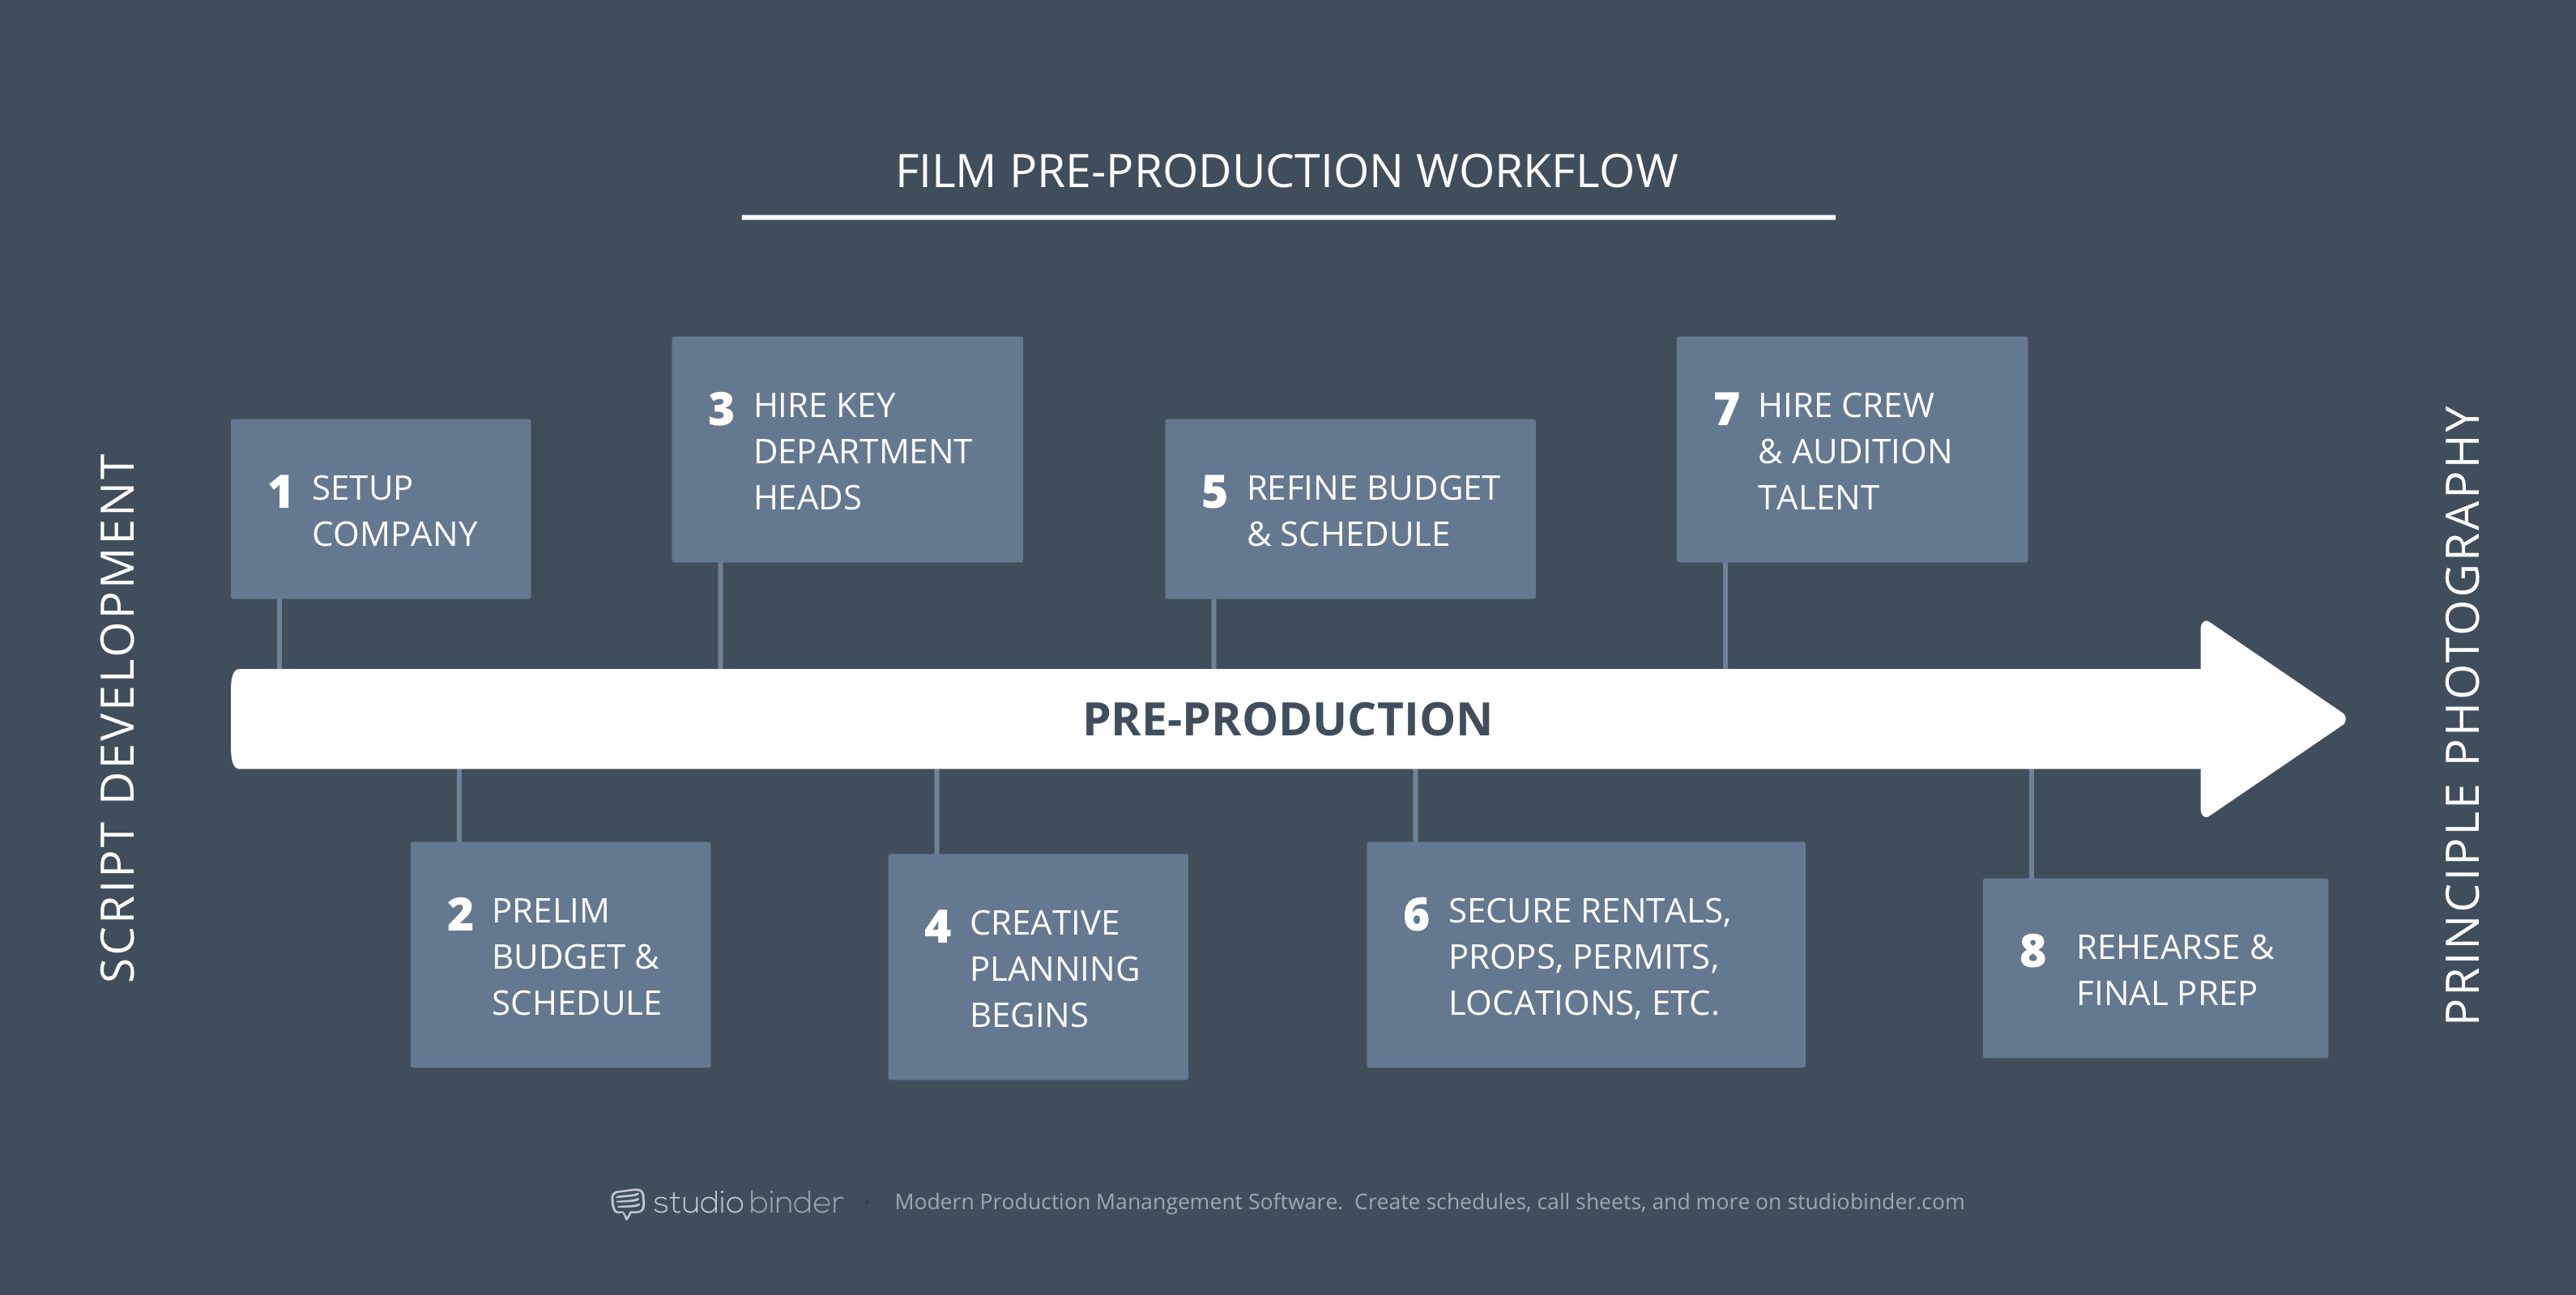 Pre-Production Checklist and Workflow — StudioBinder